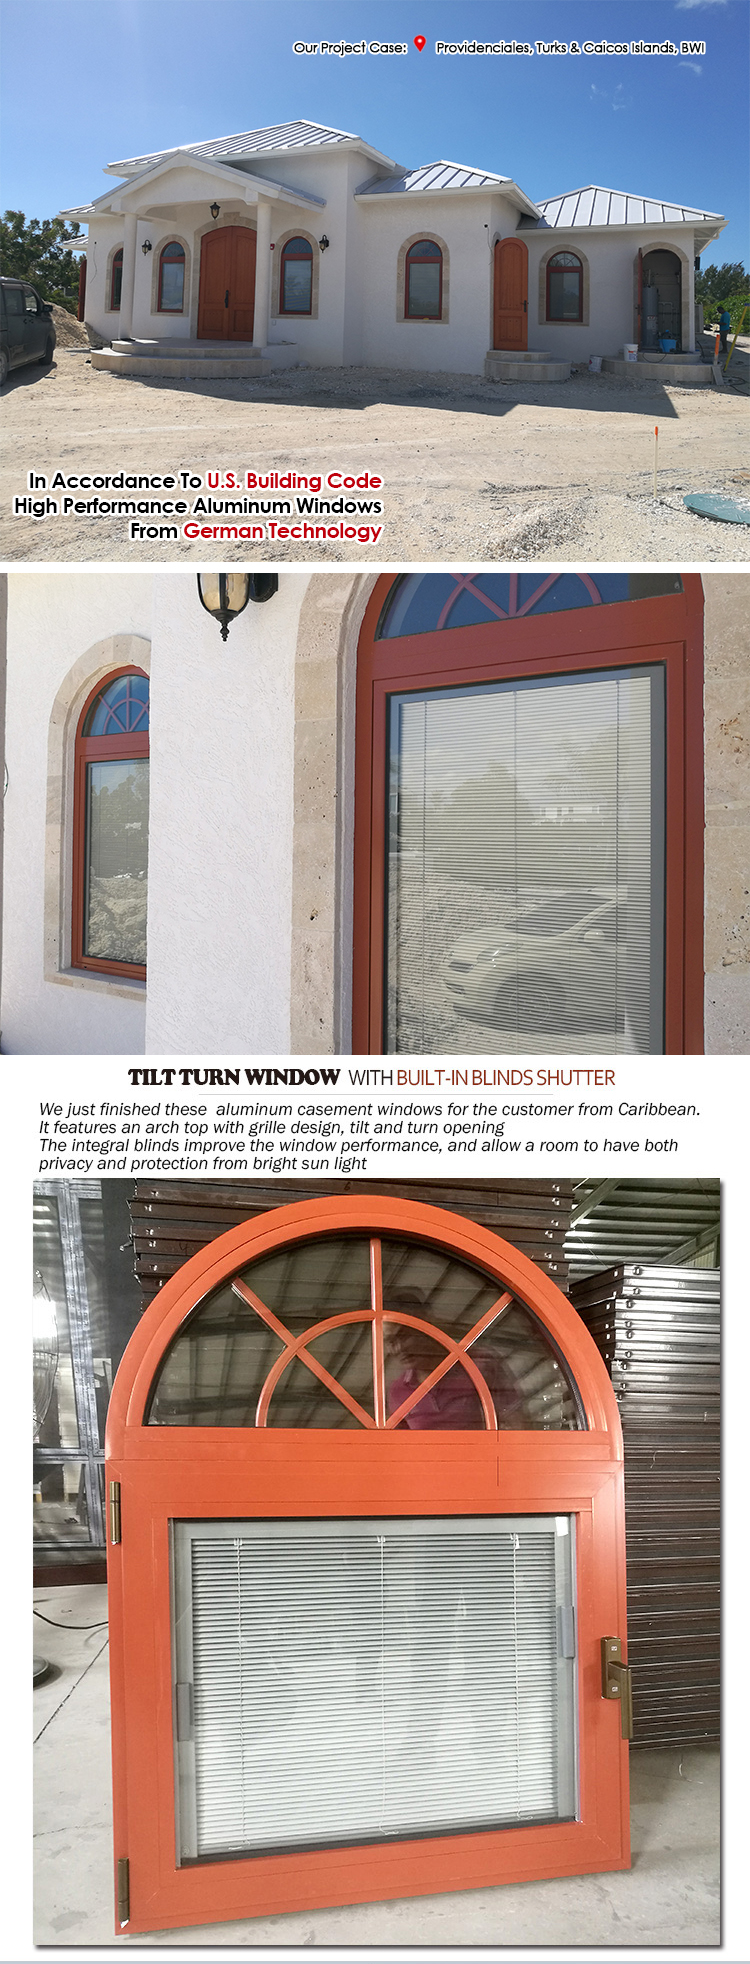 Chinese factory windows with shades inside in them window shutters lowes